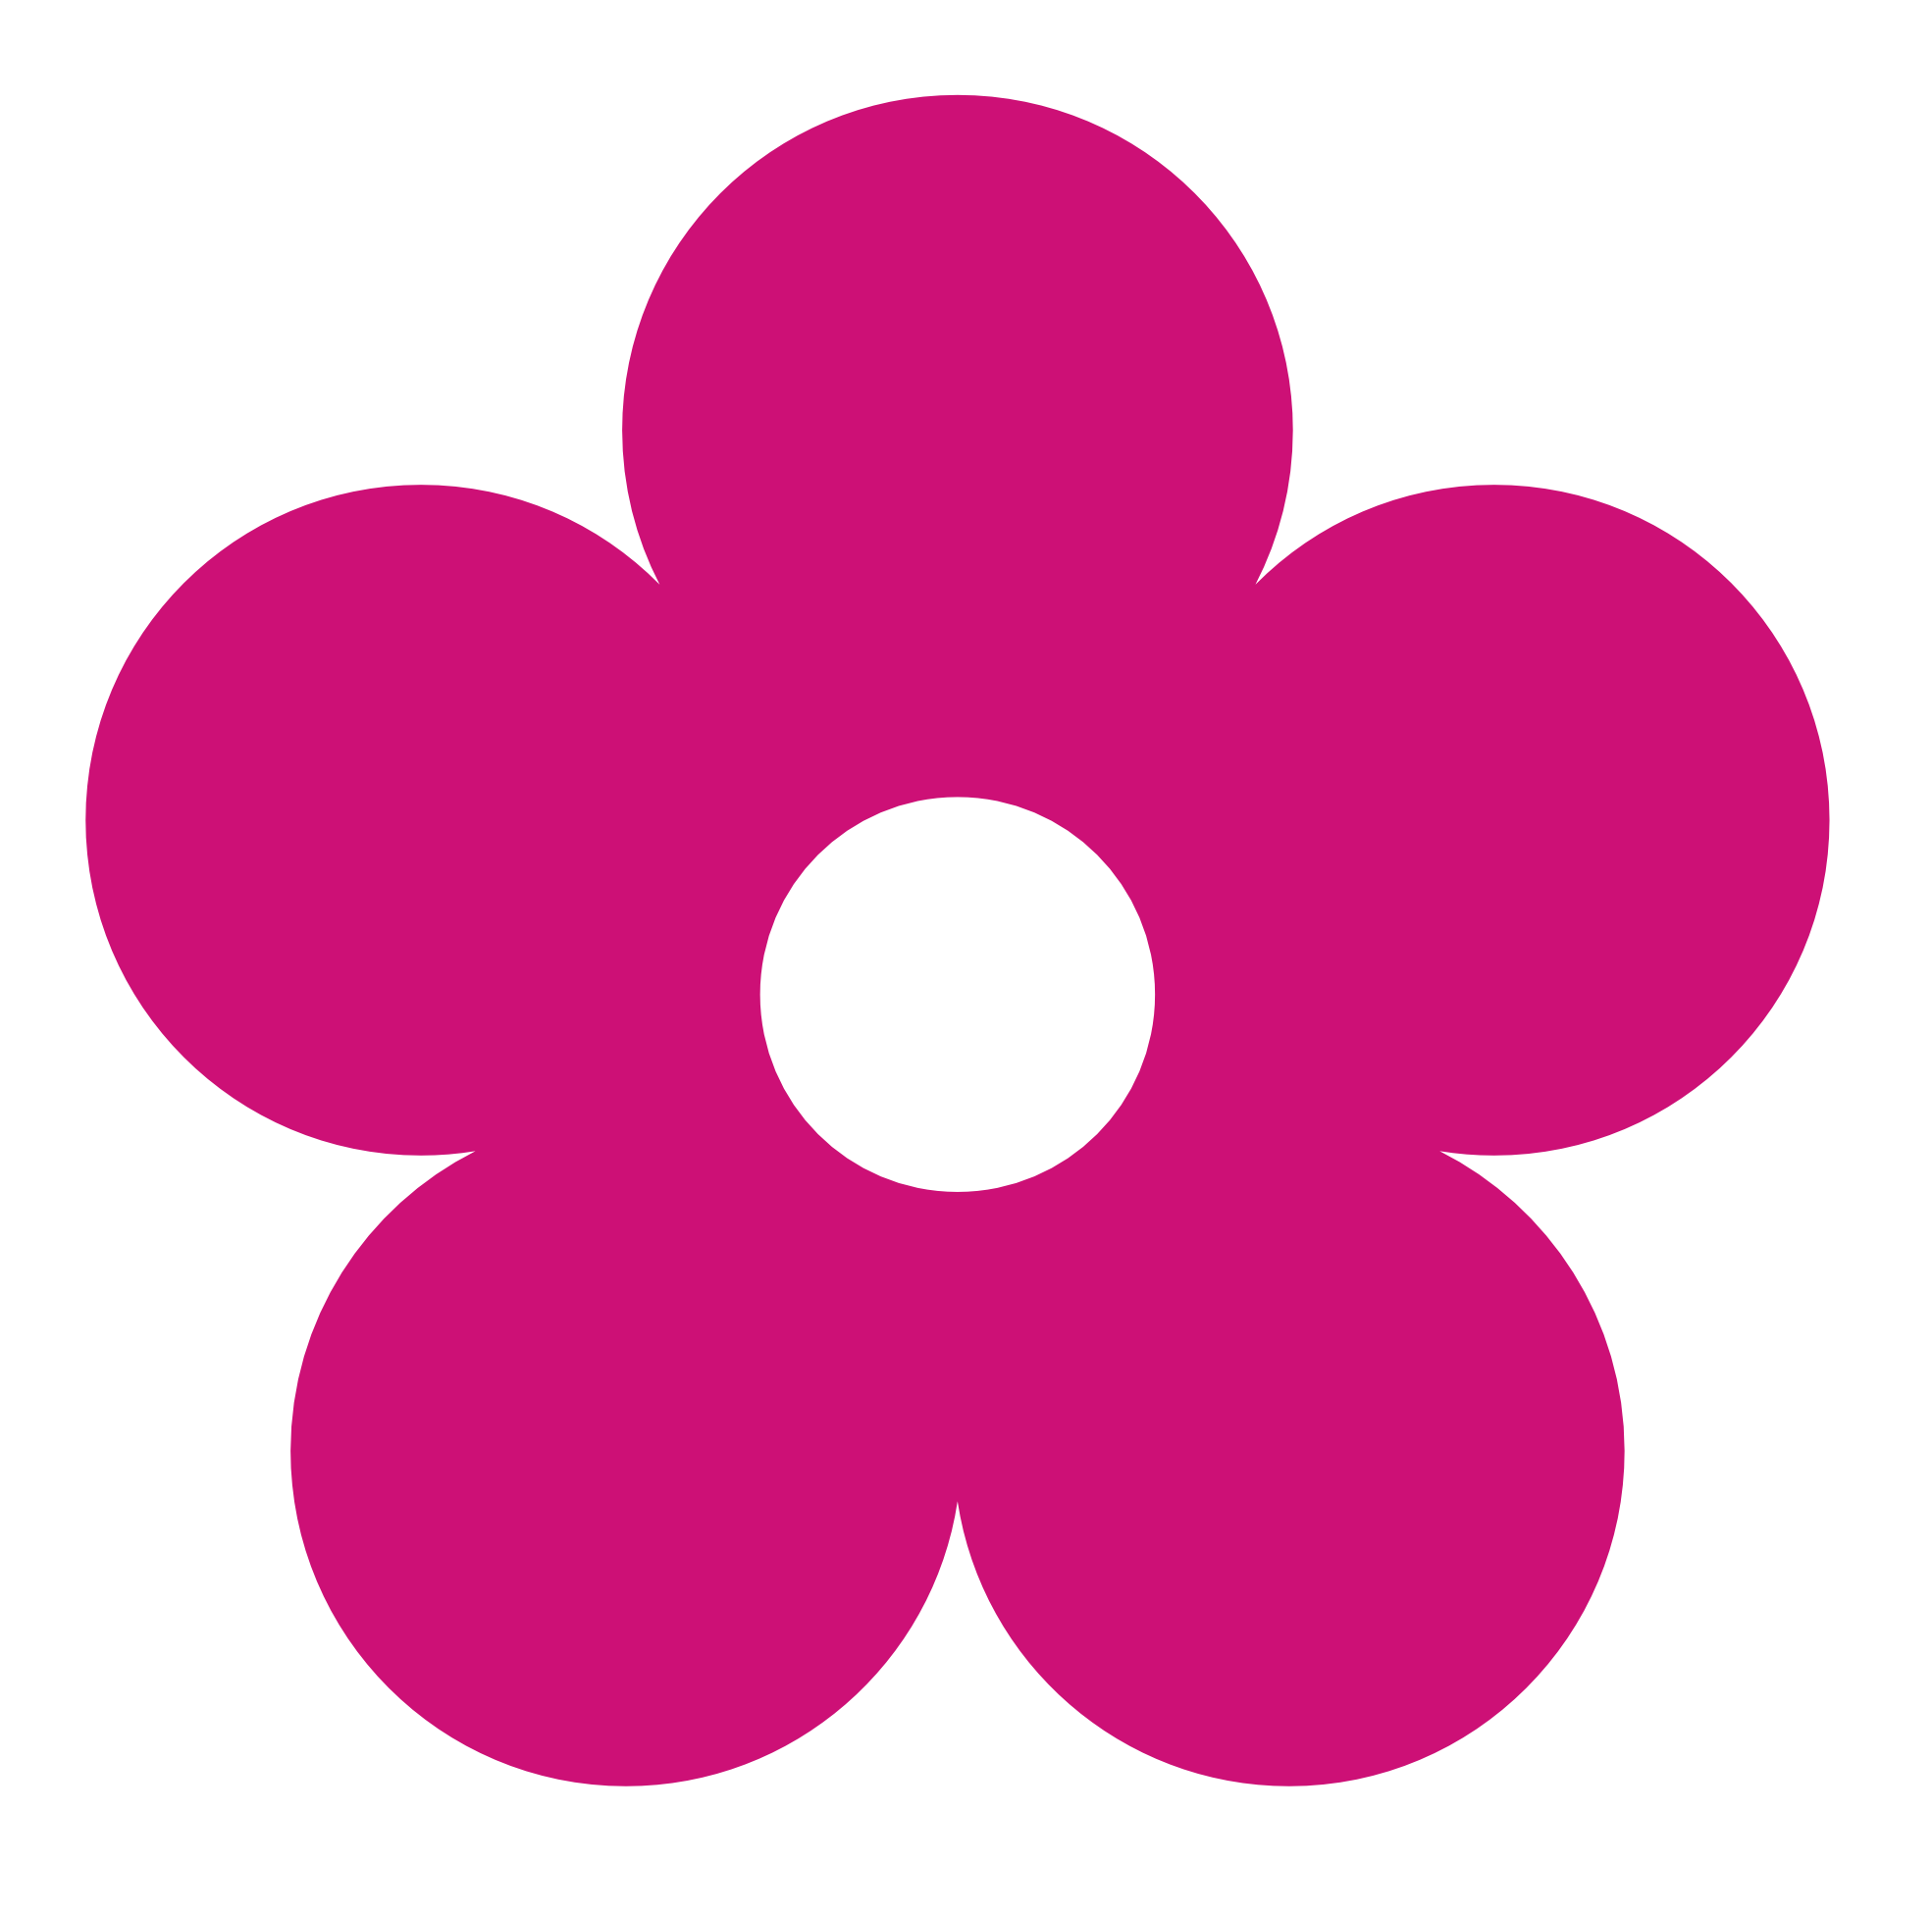 5 petal flower png. Collection of clipart